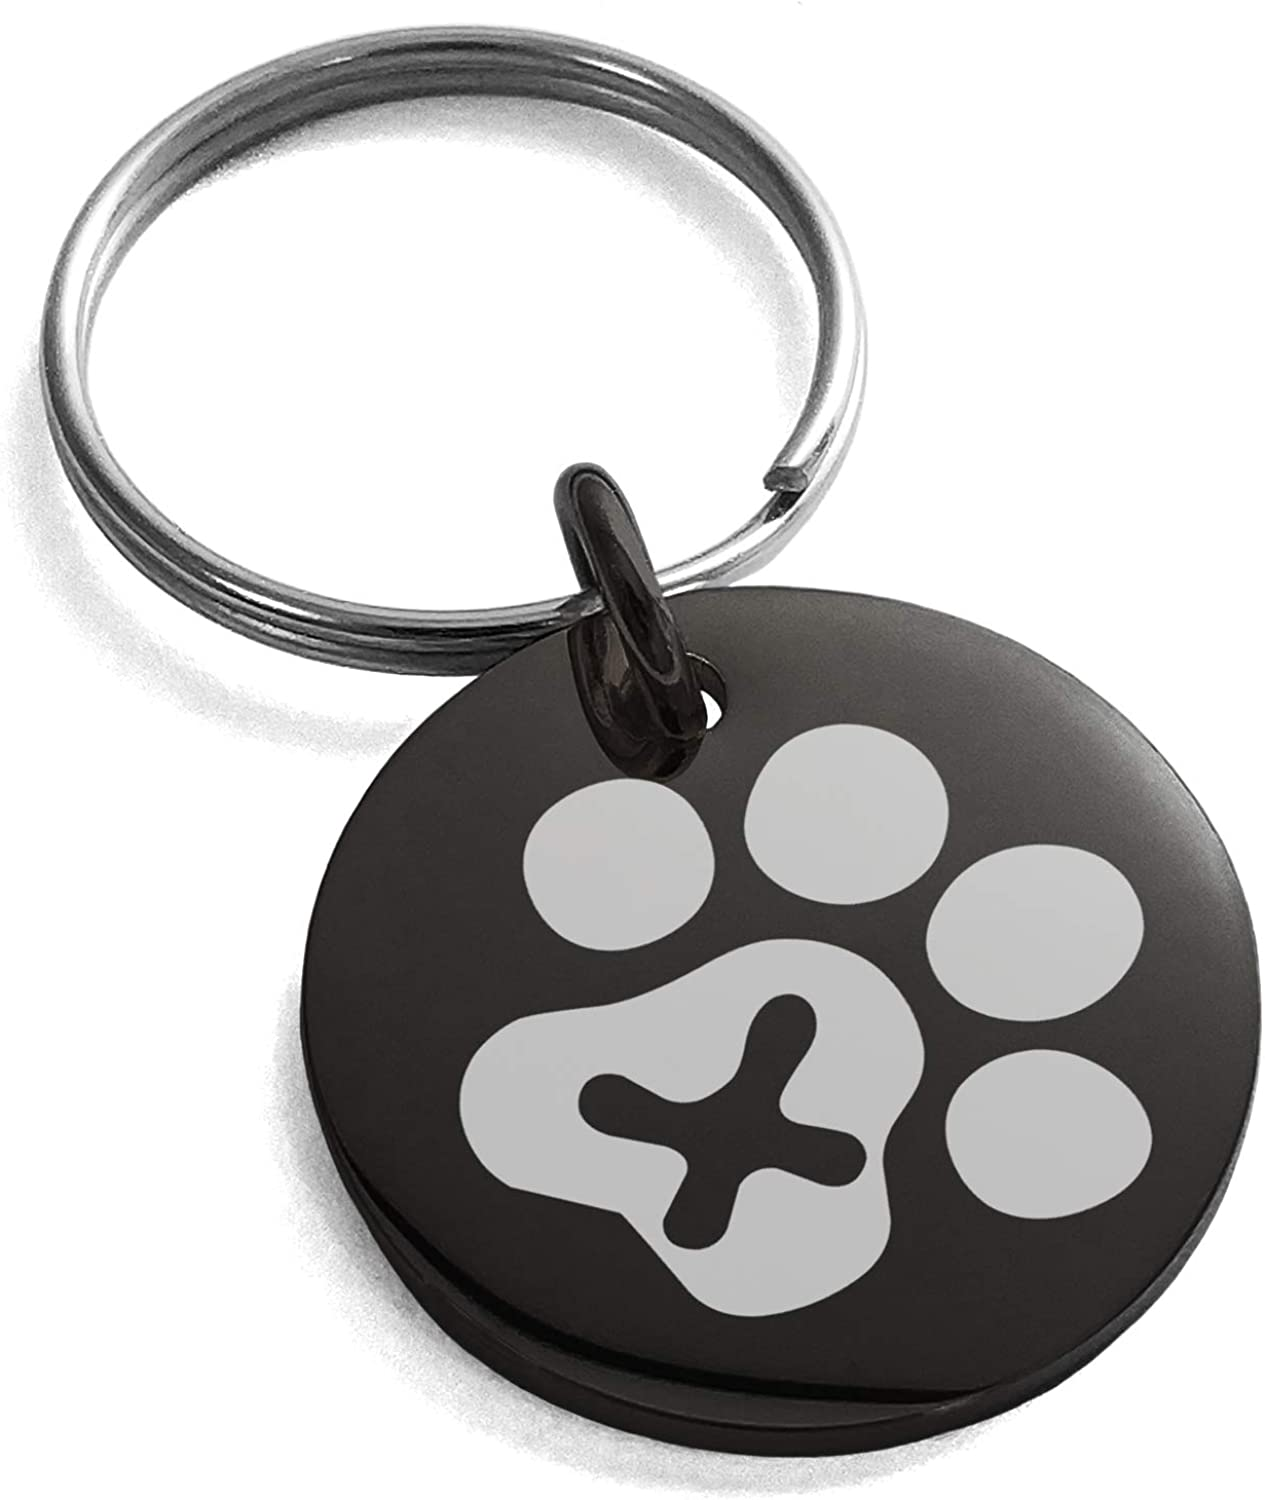 Tioneer Stainless Steel Letter X Initial Cat Dog Paws Monogram Small Medallion Circle Charm Keychain Keyring